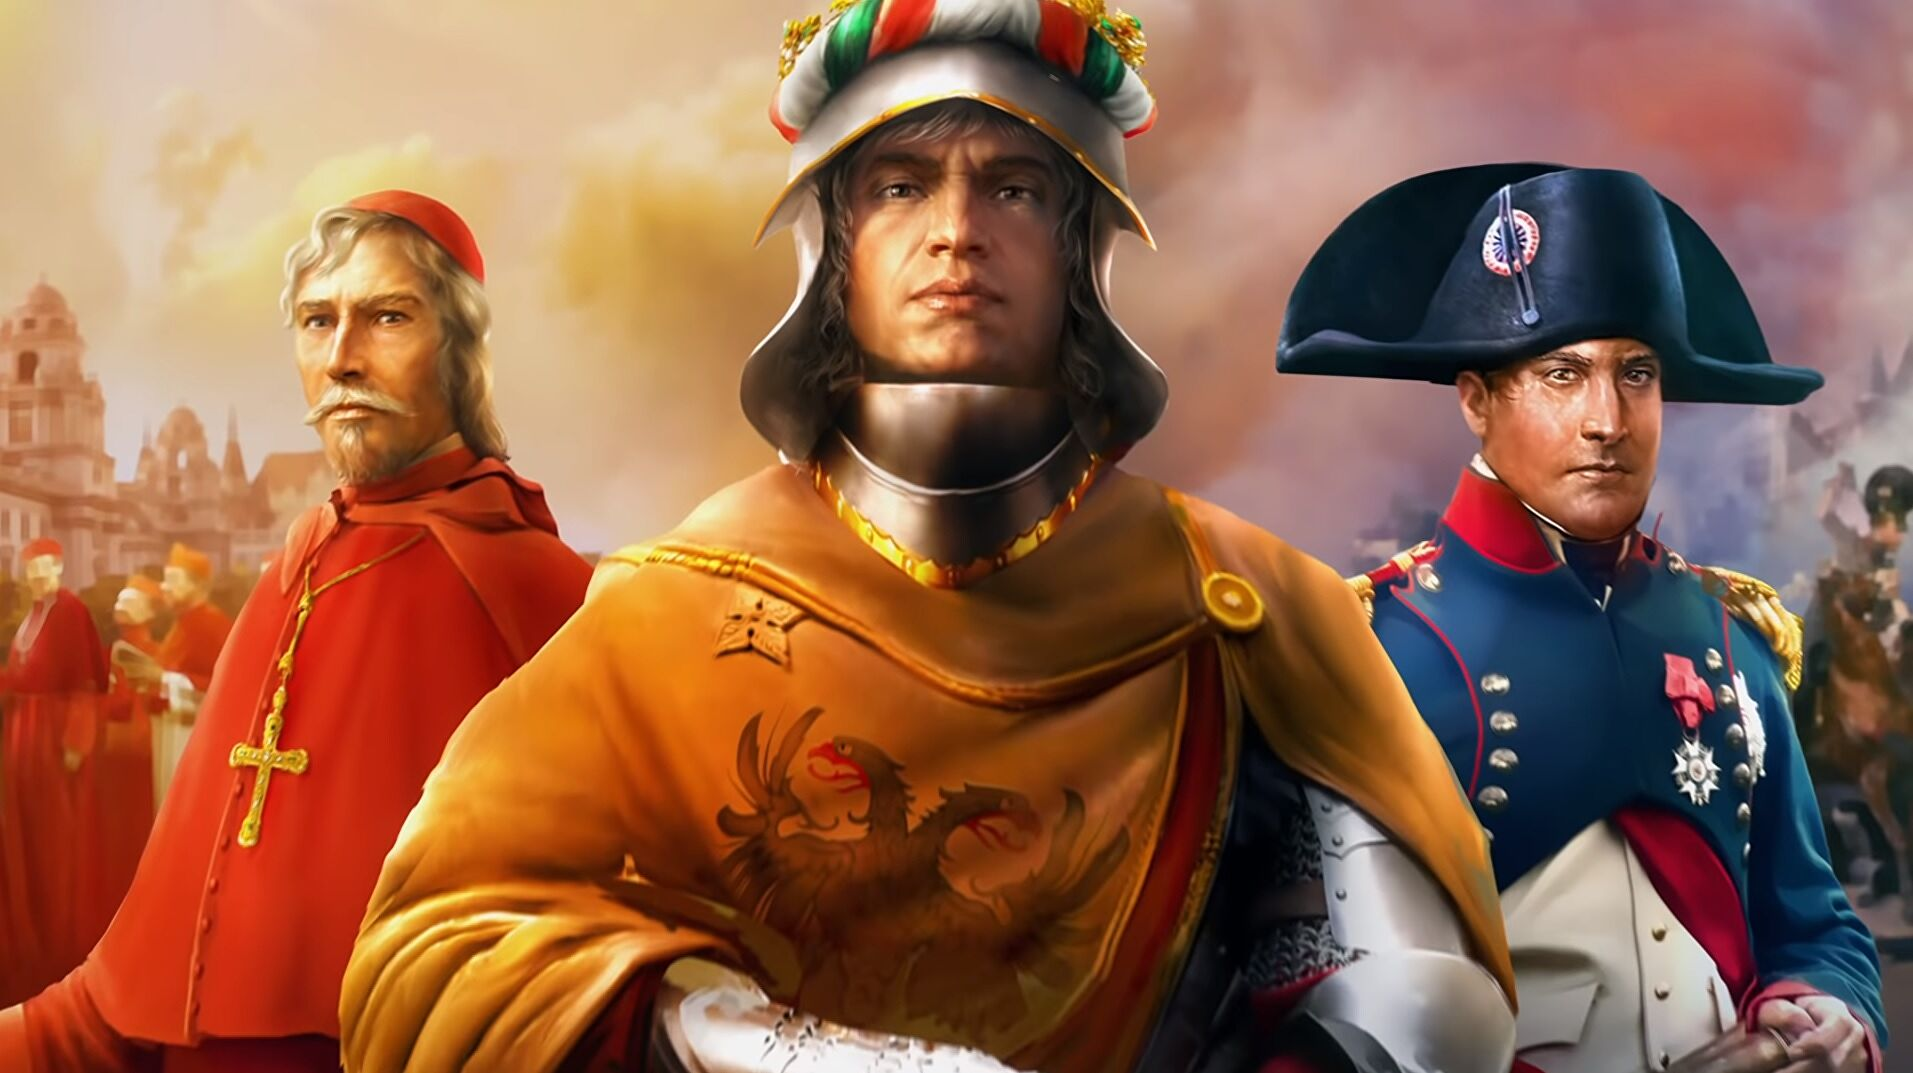 Now Paradox offer a DLC subscription for Europa Universalis 4 too